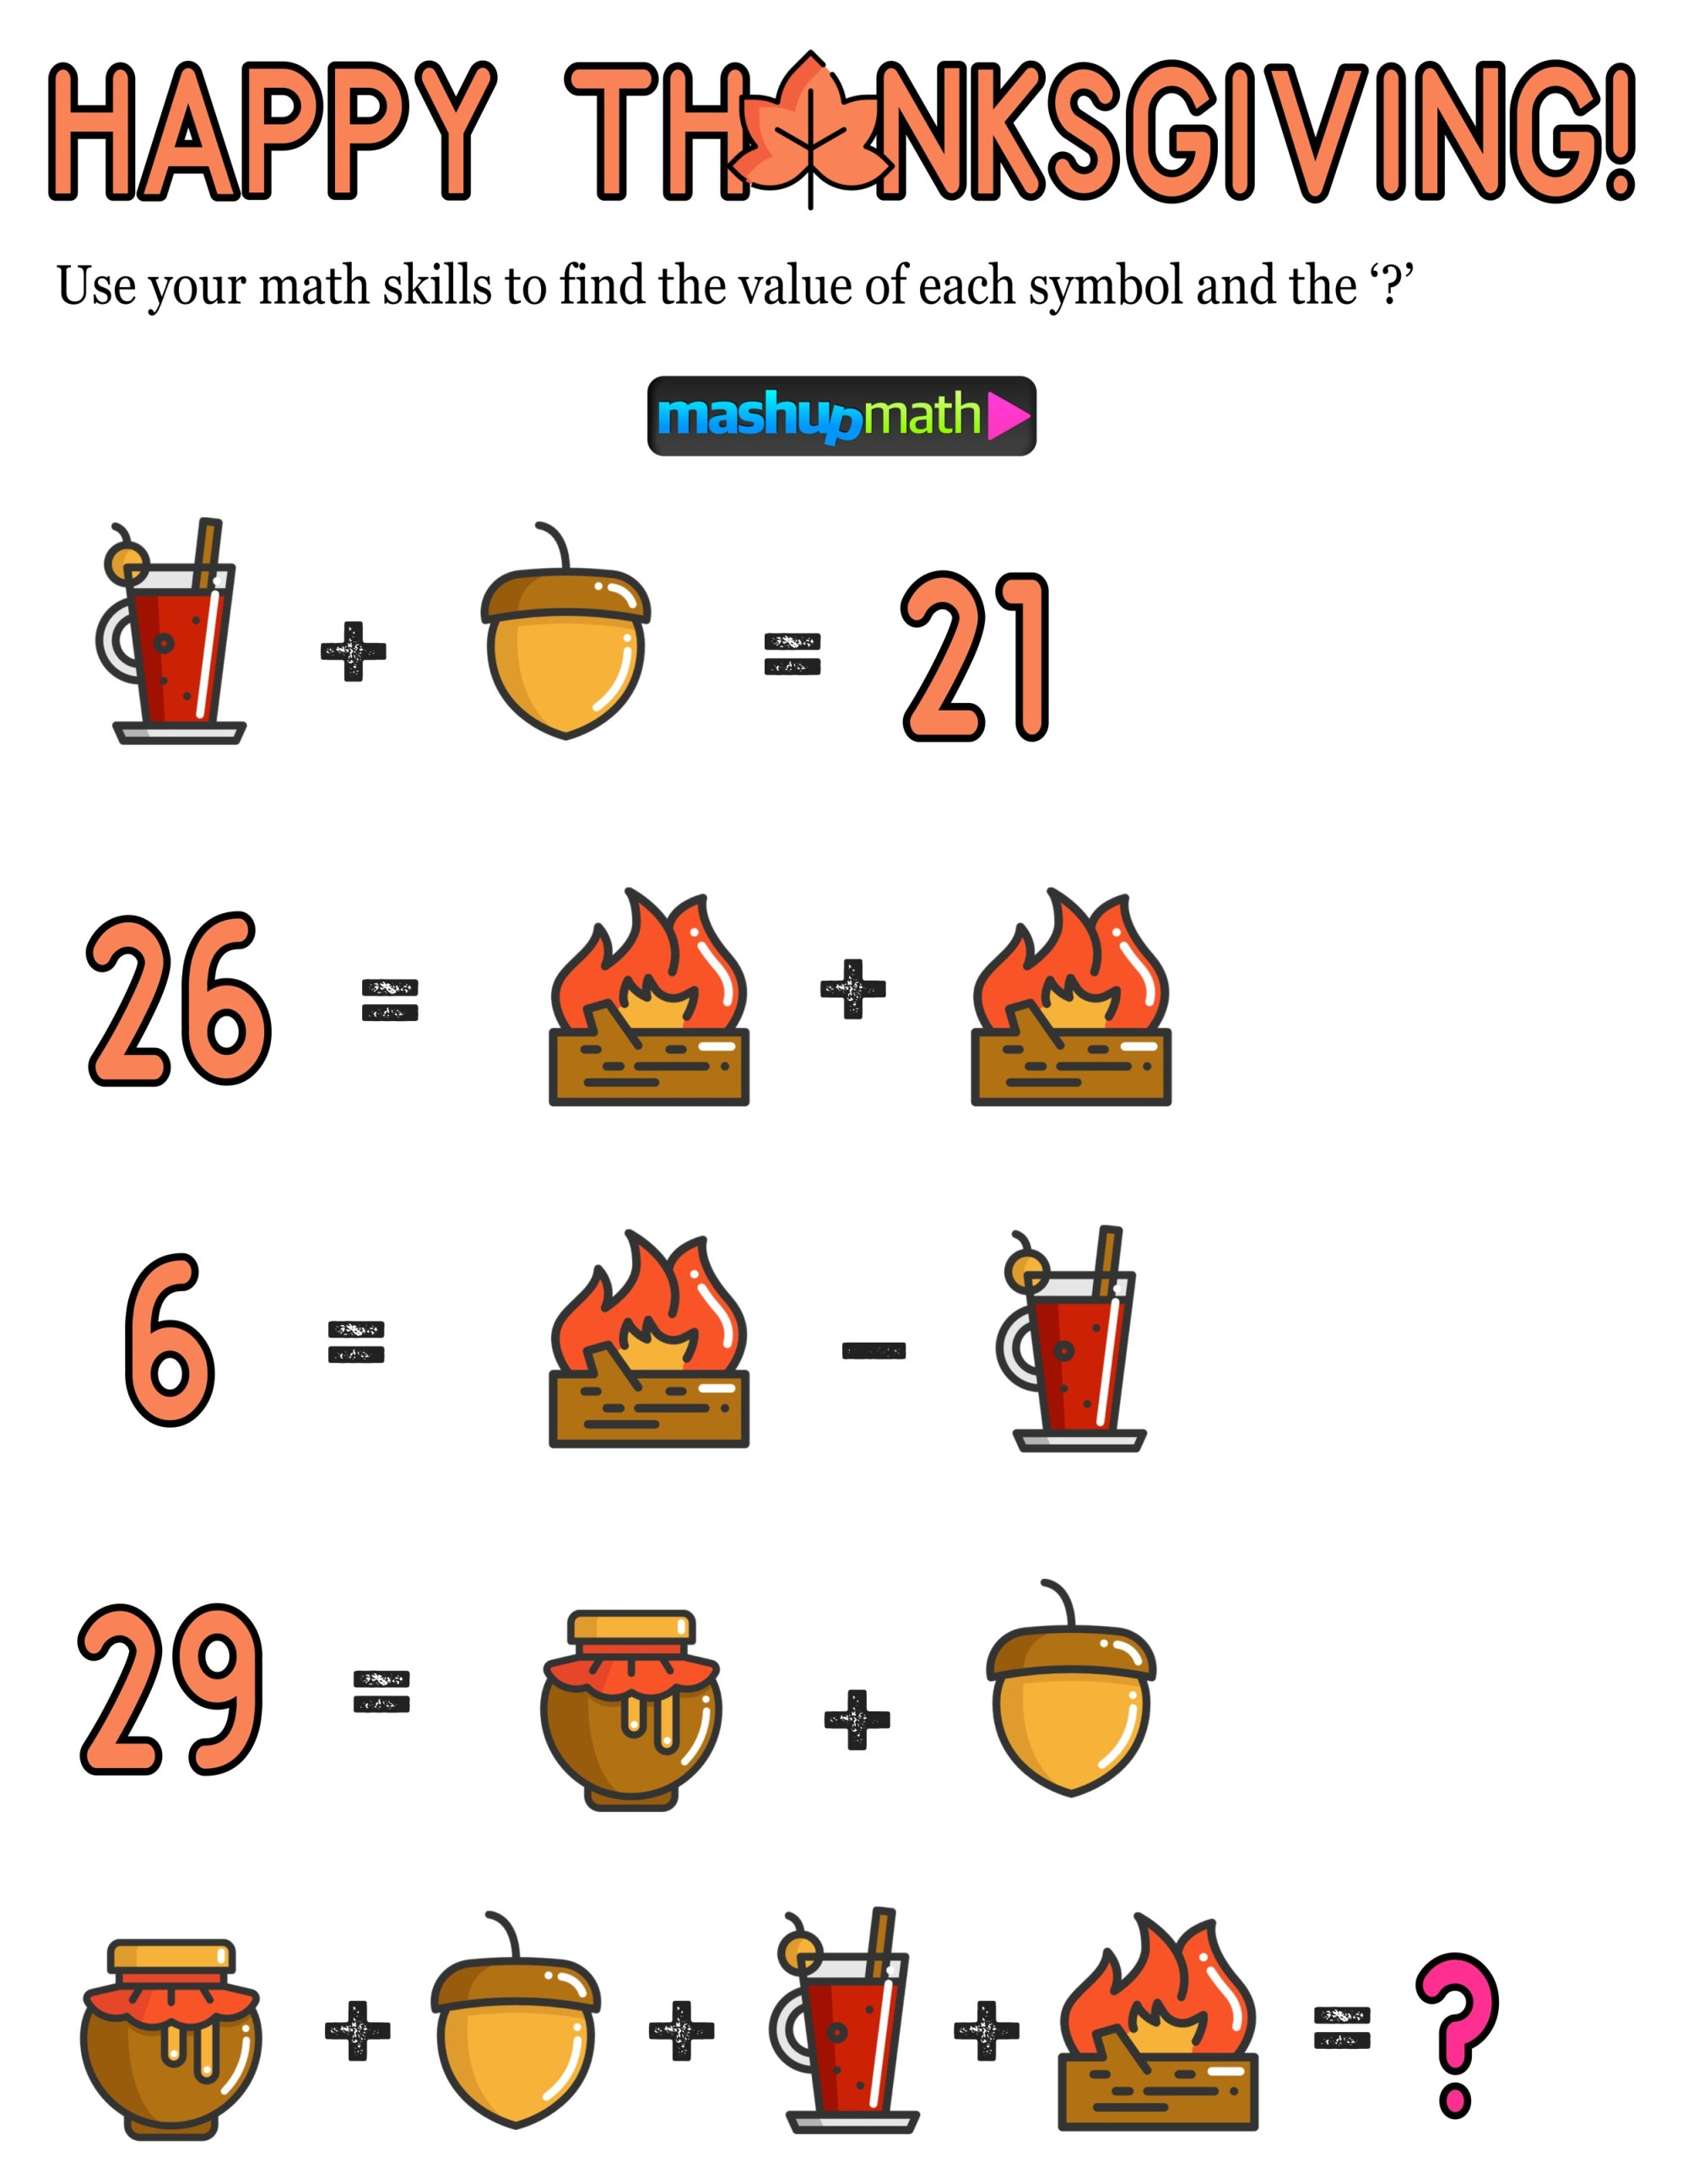 hight resolution of 12 Thanksgiving Math Activities for Grades 1-8 — Mashup Math